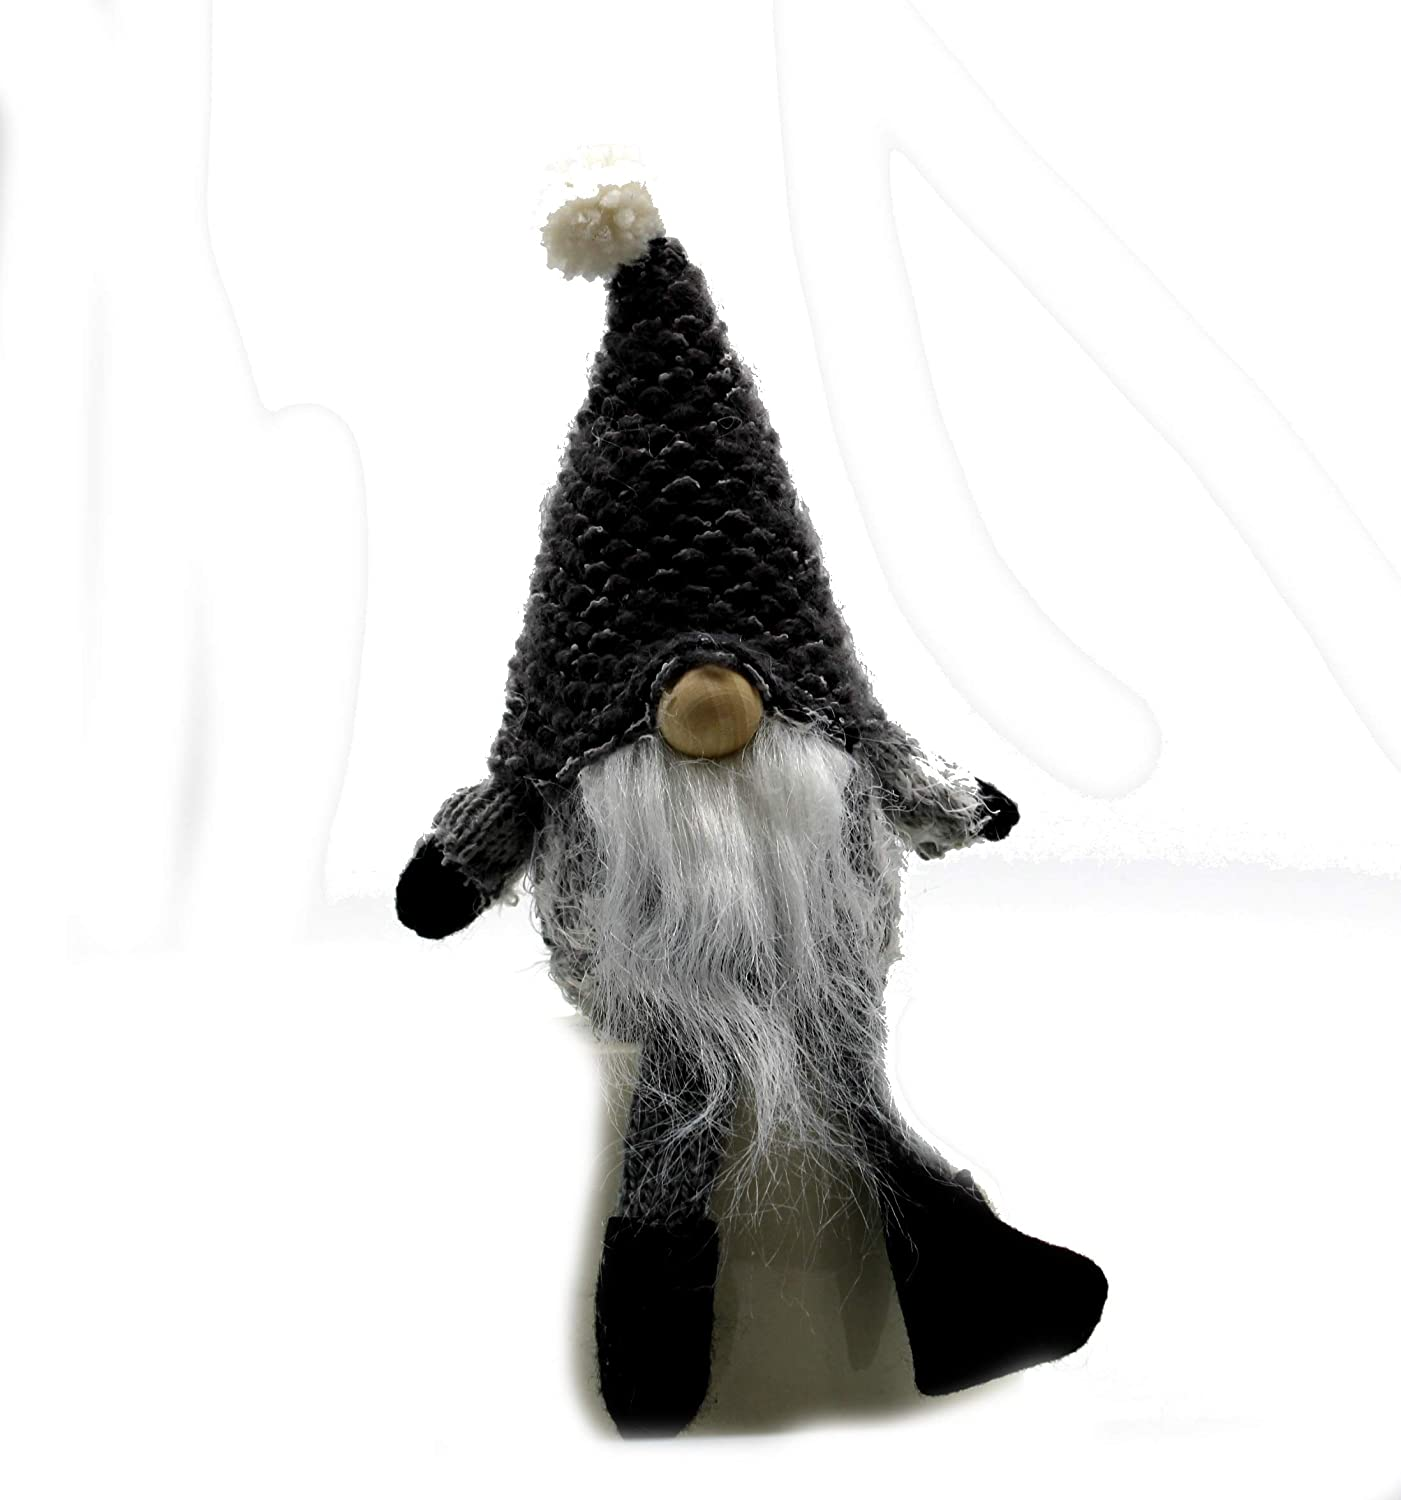 MeraVic - Gnome in Gray Hat with Legs - 9.5 inches - Winter Decorations - Felt - Holiday Decor - Bearded - Gnome in Gray Hat with Legs